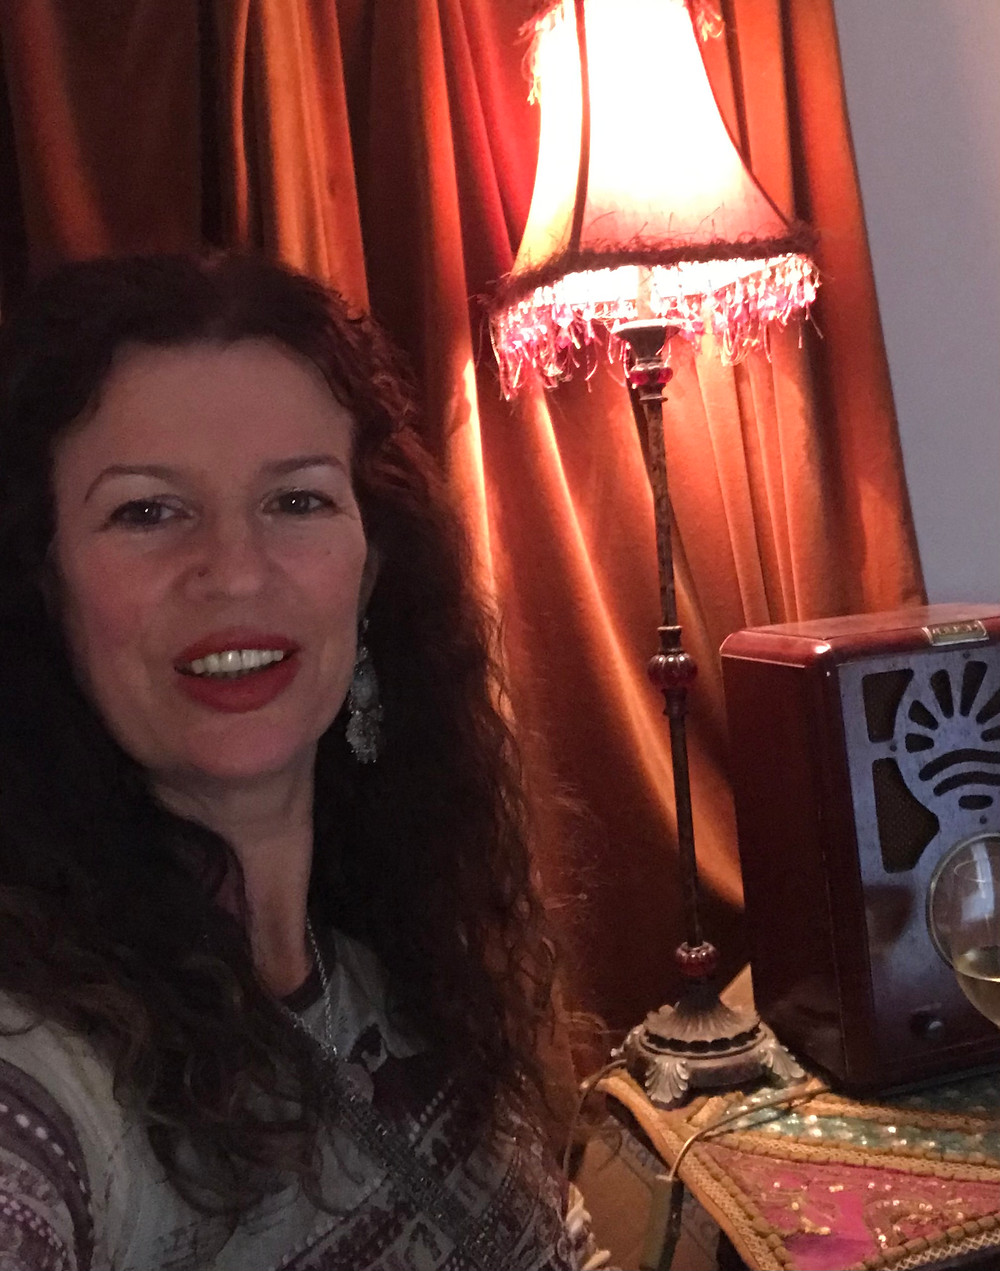 An image of Kate Leimer, a person with long curly dark hair. She smiles into the camera. Alongside her is a lit lamp.